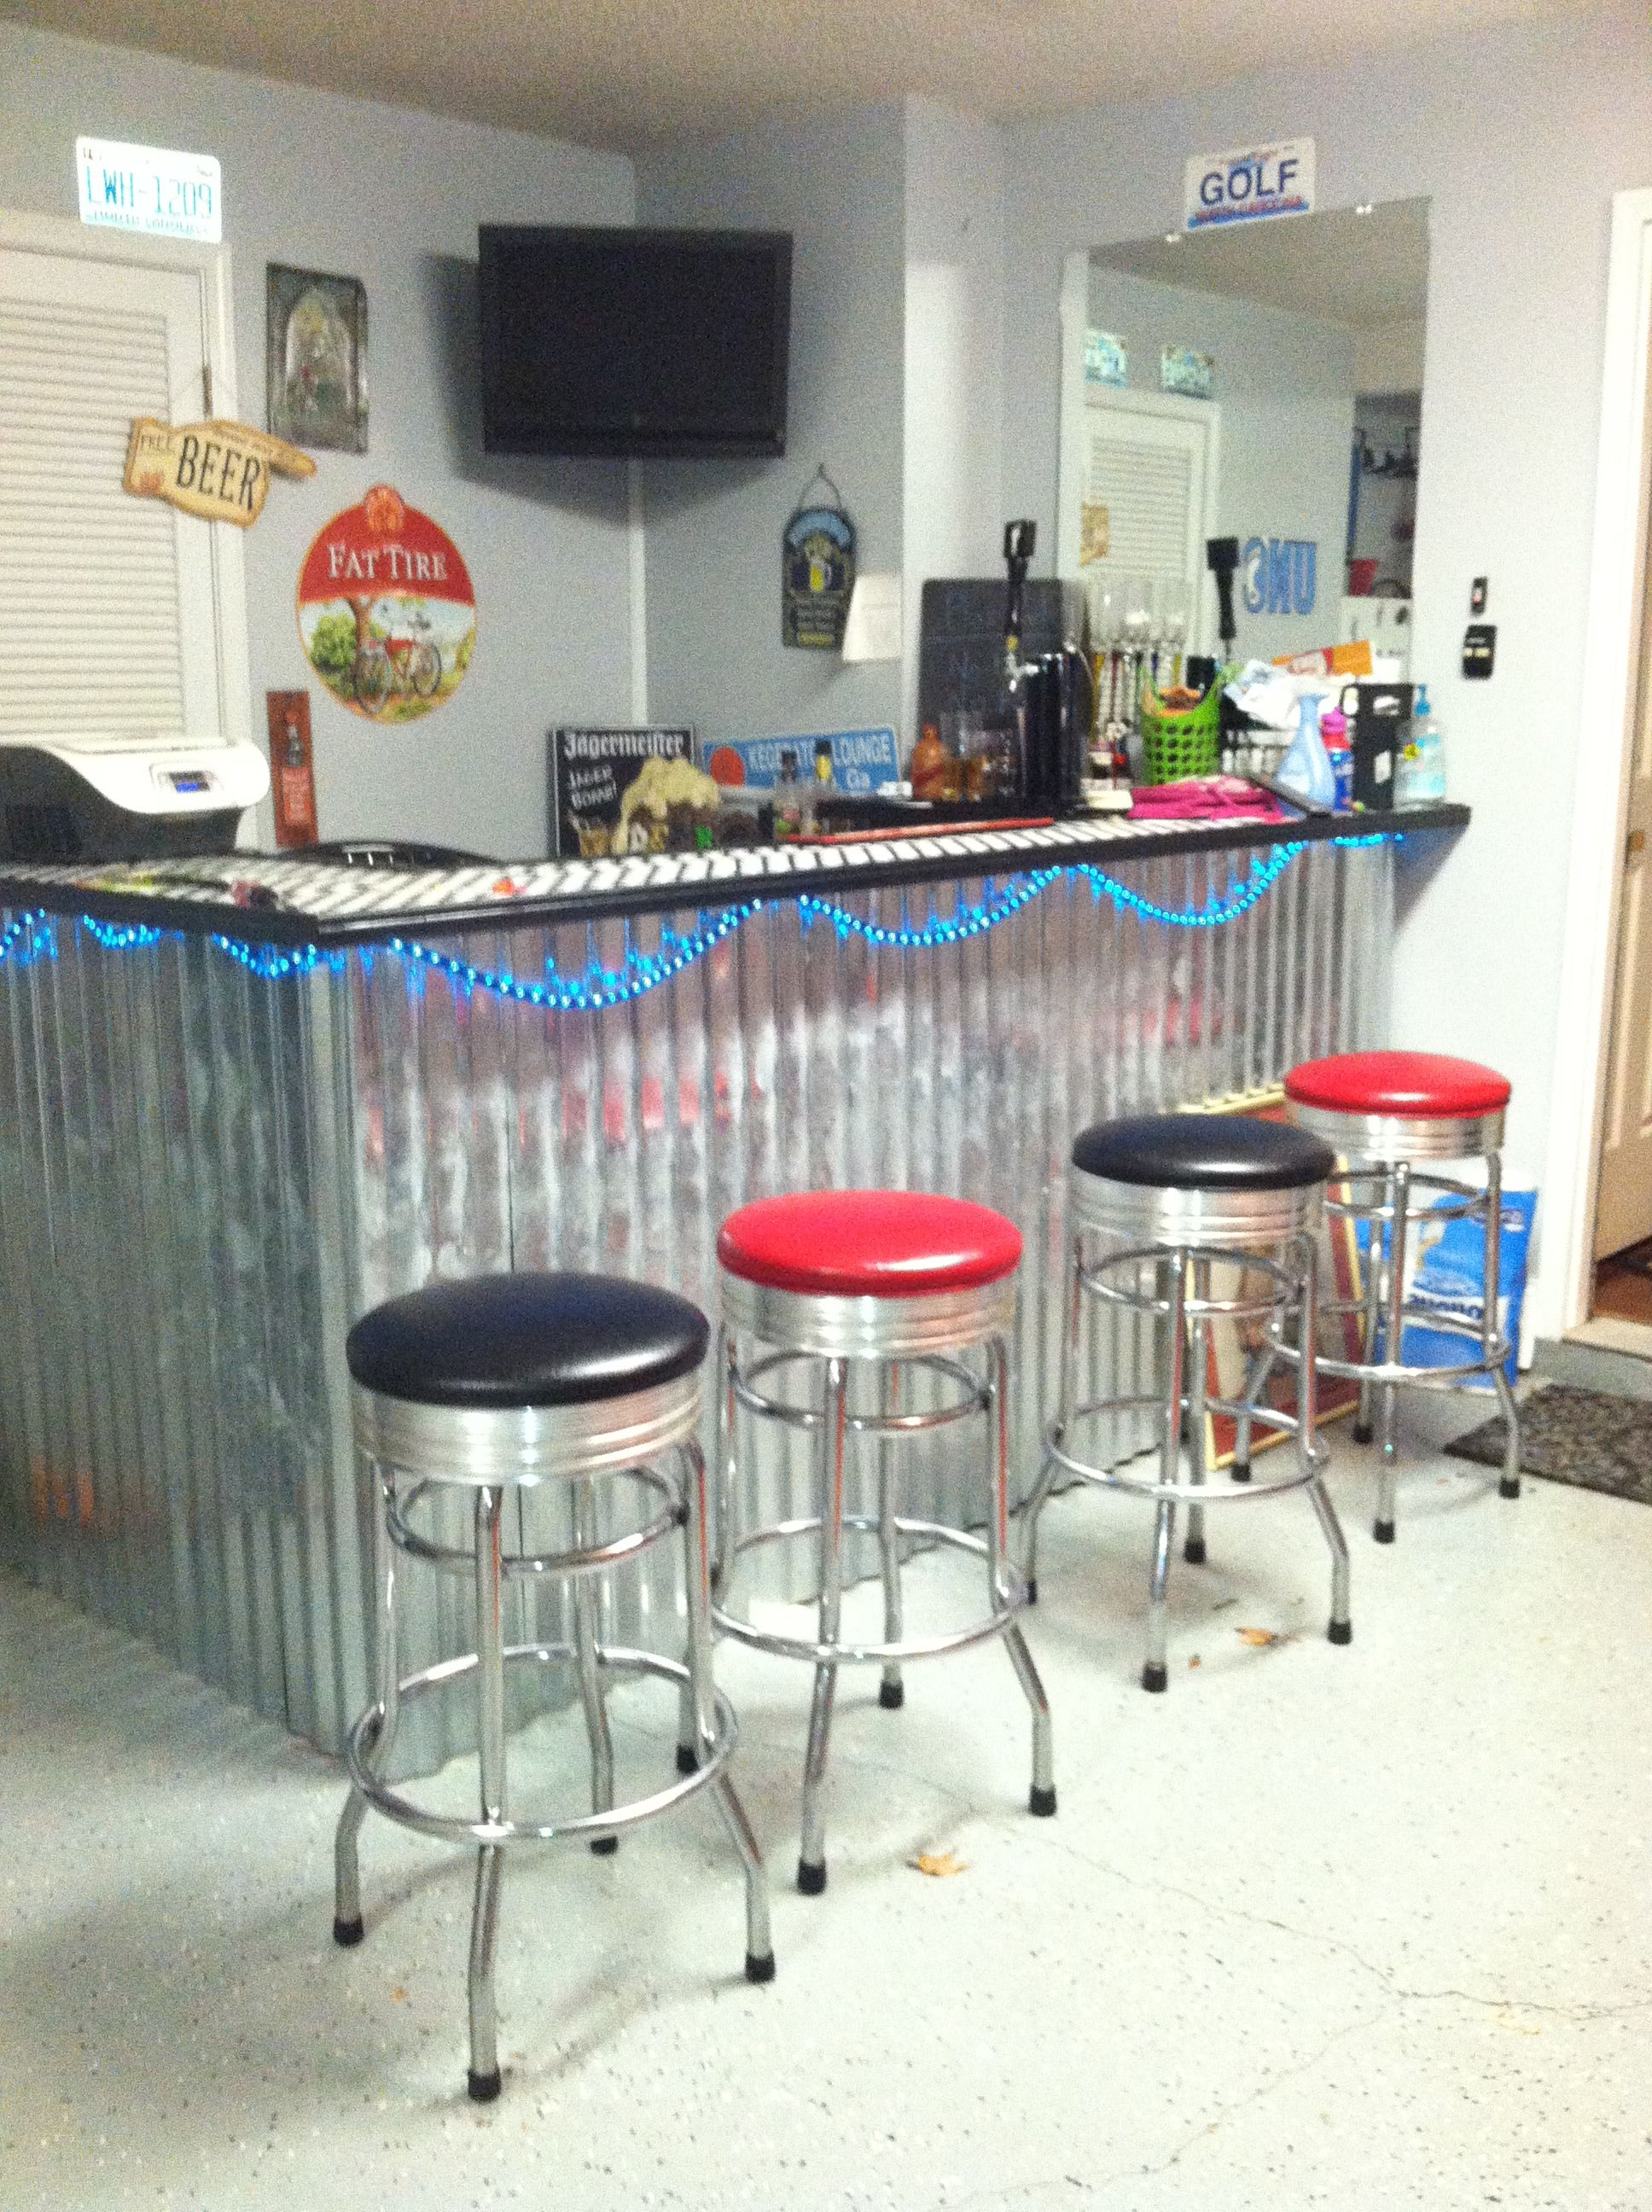 Garage Bar For The Man In My Life